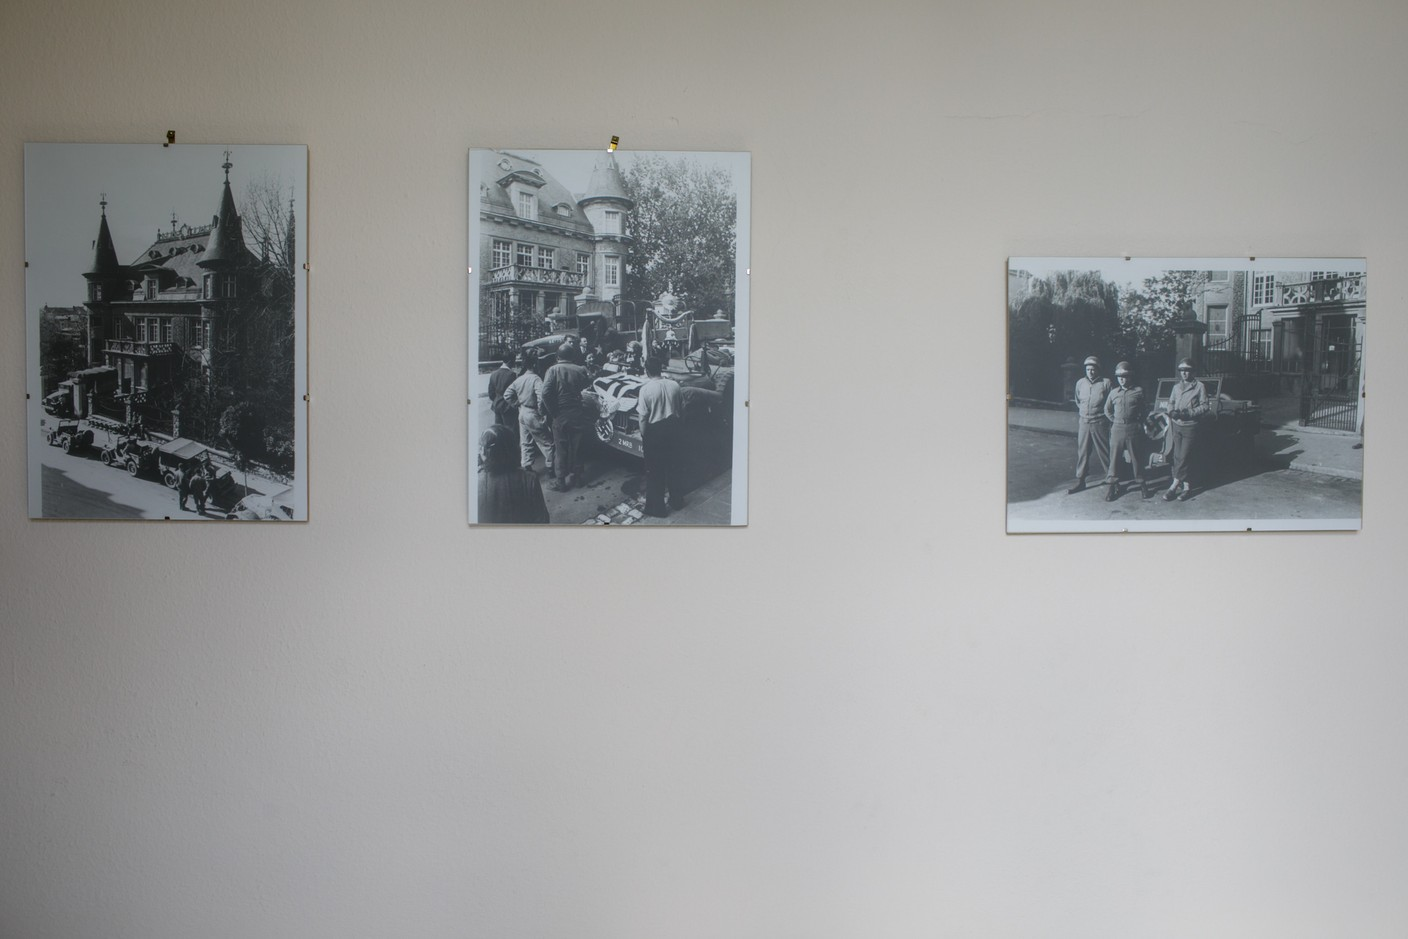 Photos show the villa following the liberation of Luxembourg by Allied troops Matic Zorman / Maison Moderne